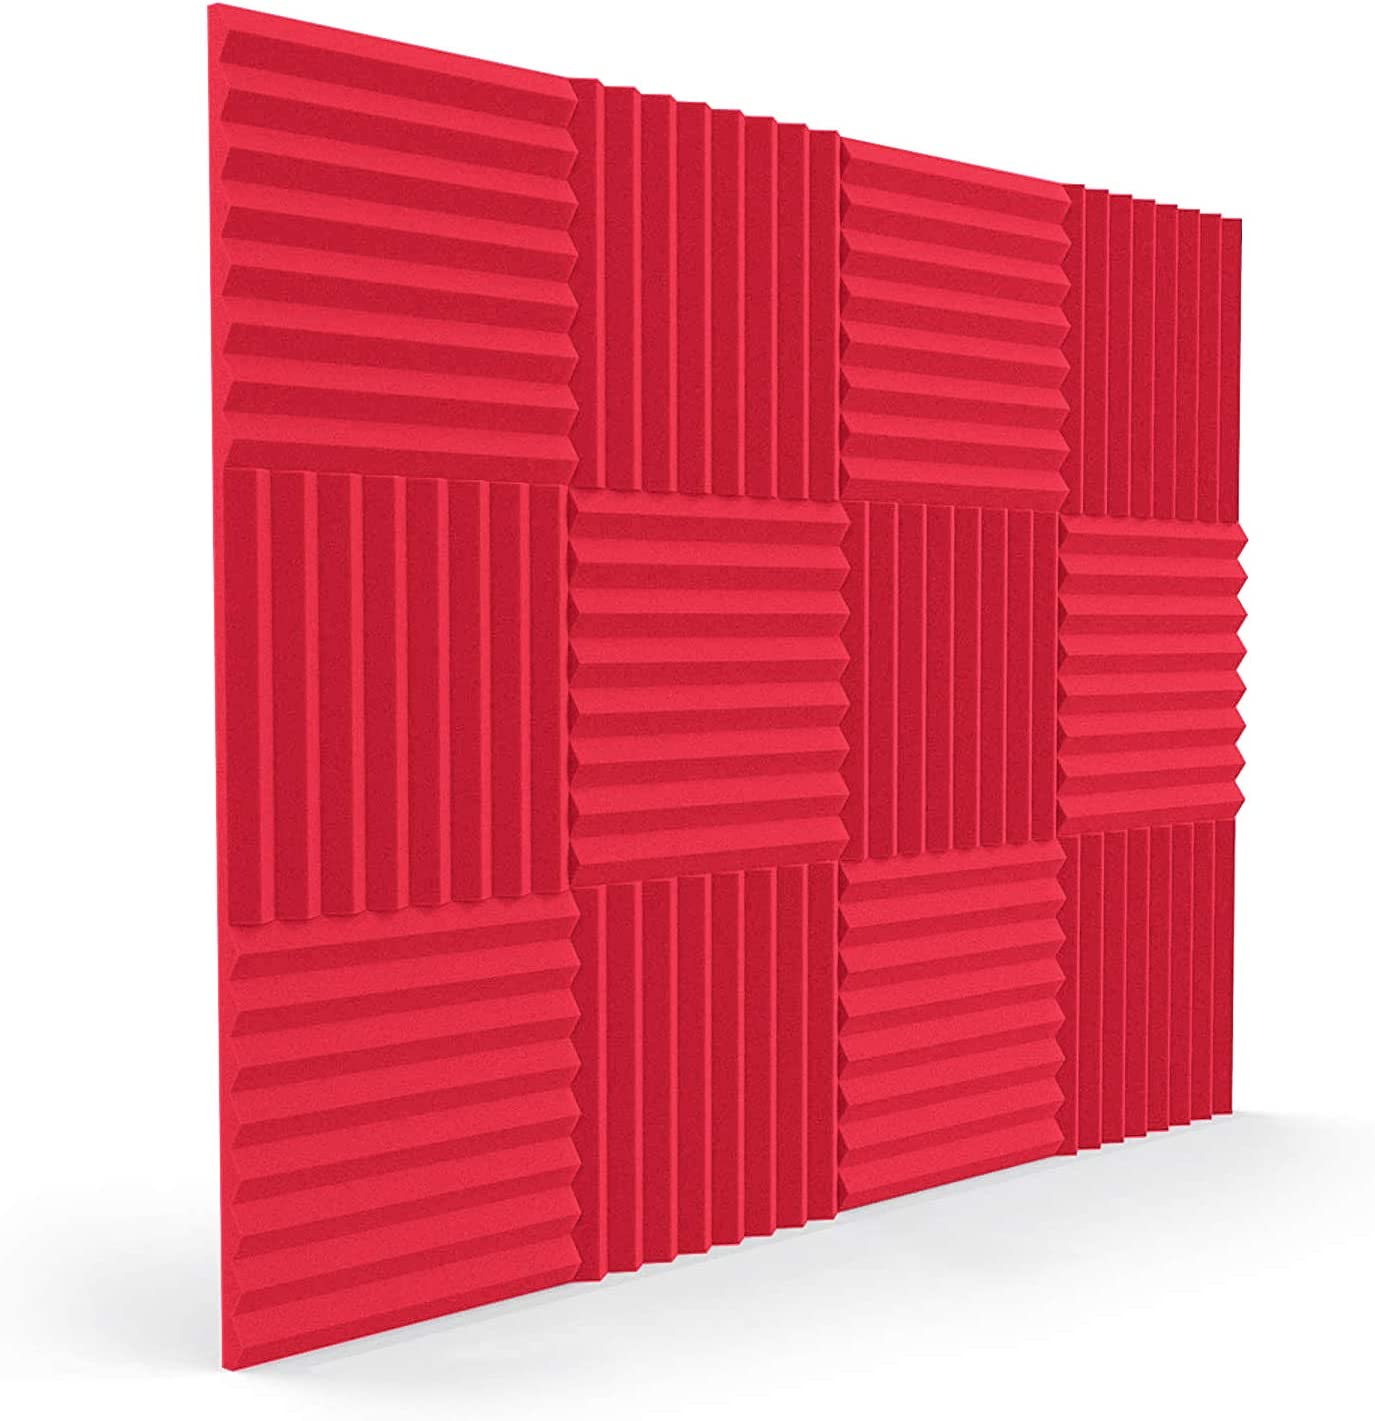 SDKEI 12 Pack Acoustic Foam Panels with 48 Double-sided Tape 1x 12x 12 Soundproof Studio Foam Wedges Sound Insulation Absorbing Padding for Home Studio Ceiling Game Room